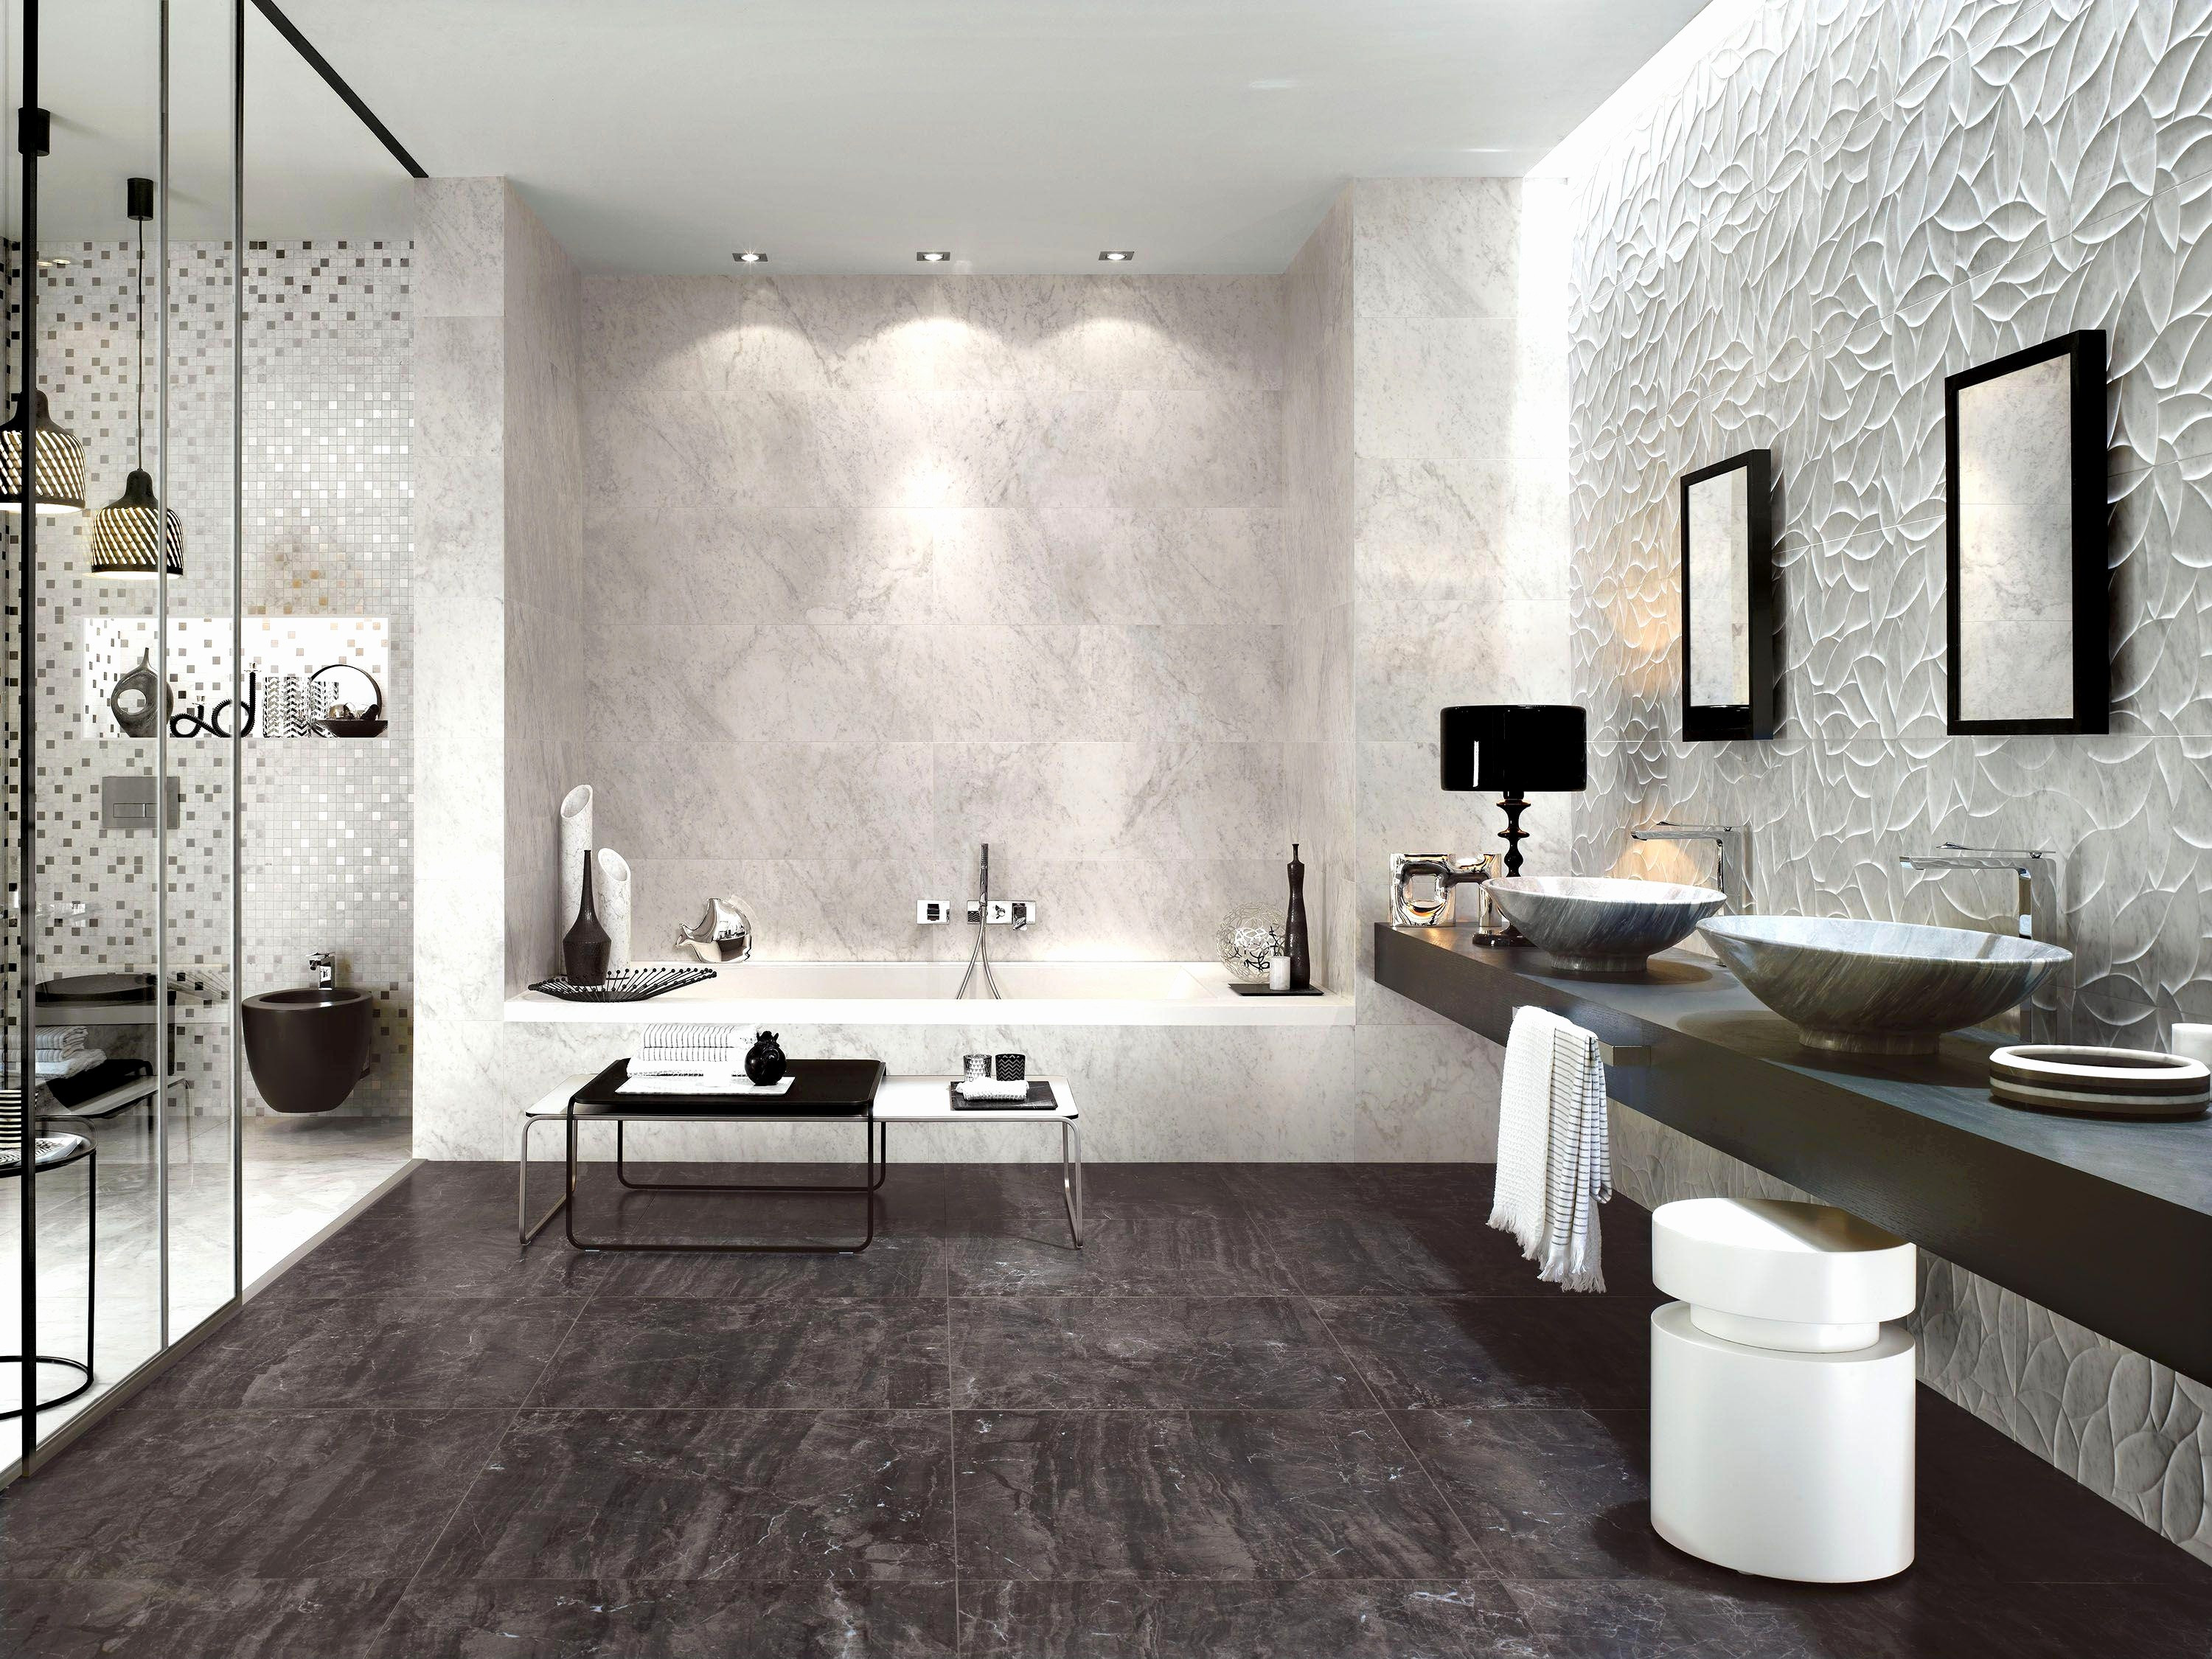 gray hardwood floor ideas of awesome best broom for dog hair on hardwood floors 332ndf org with gallery unique bathroom tiling ideas best h sink install bathroom i 0d exciting 50 lovely hardwood